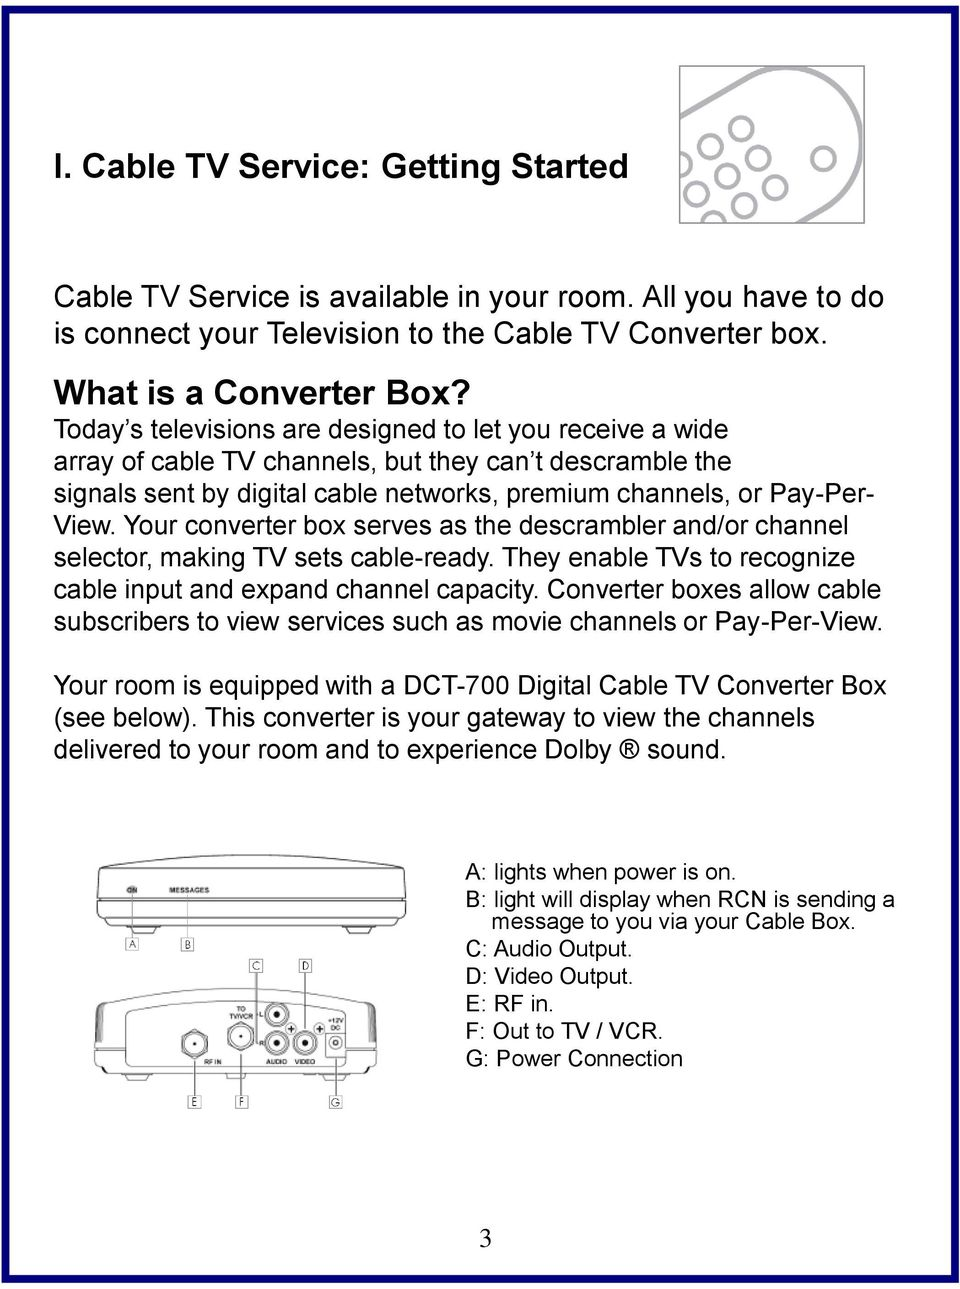 Cable Television Welcome Guide - PDF